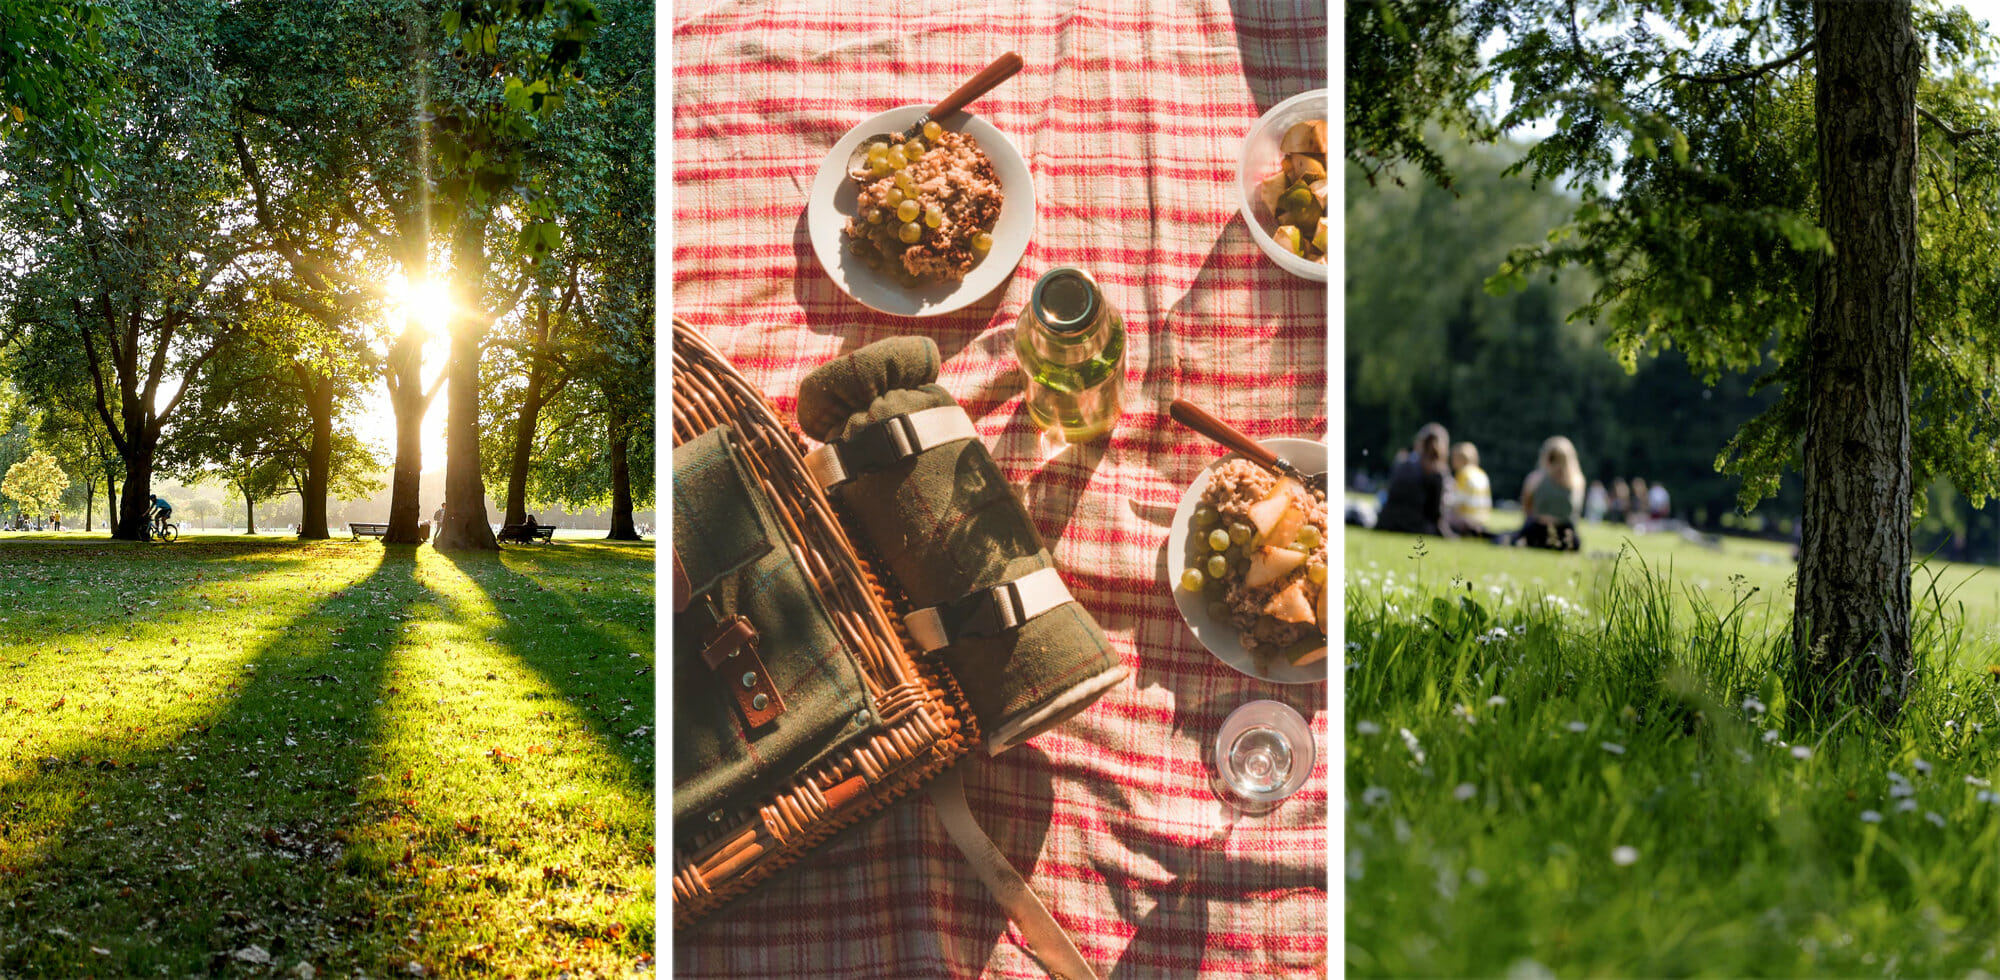 Best Parks in London for a Picnic